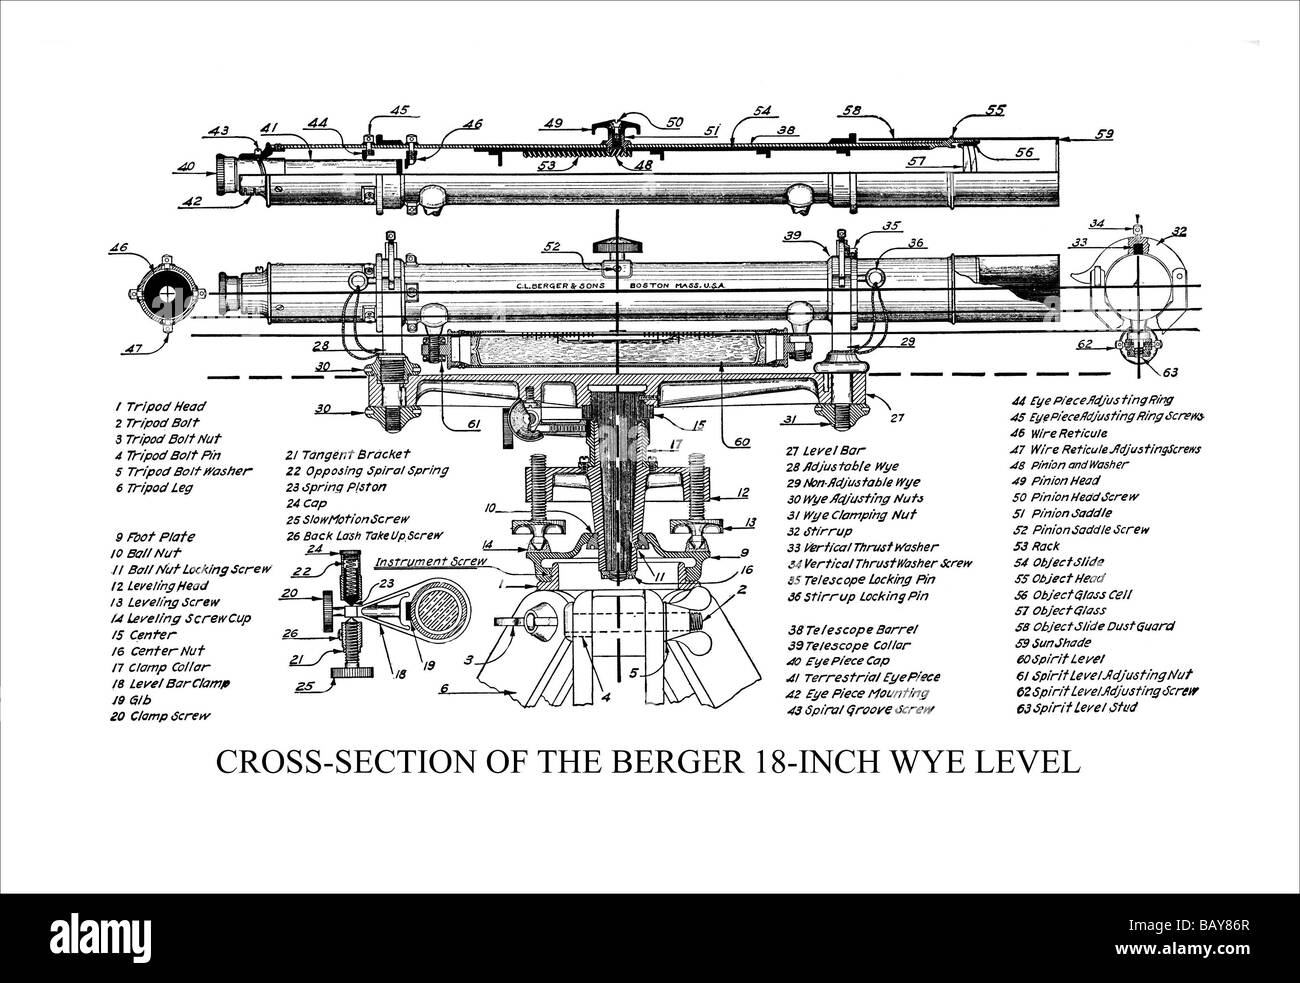 Cross section of the berger 18 inch wye level stock photo royalty cross section of the berger 18 inch wye level pooptronica